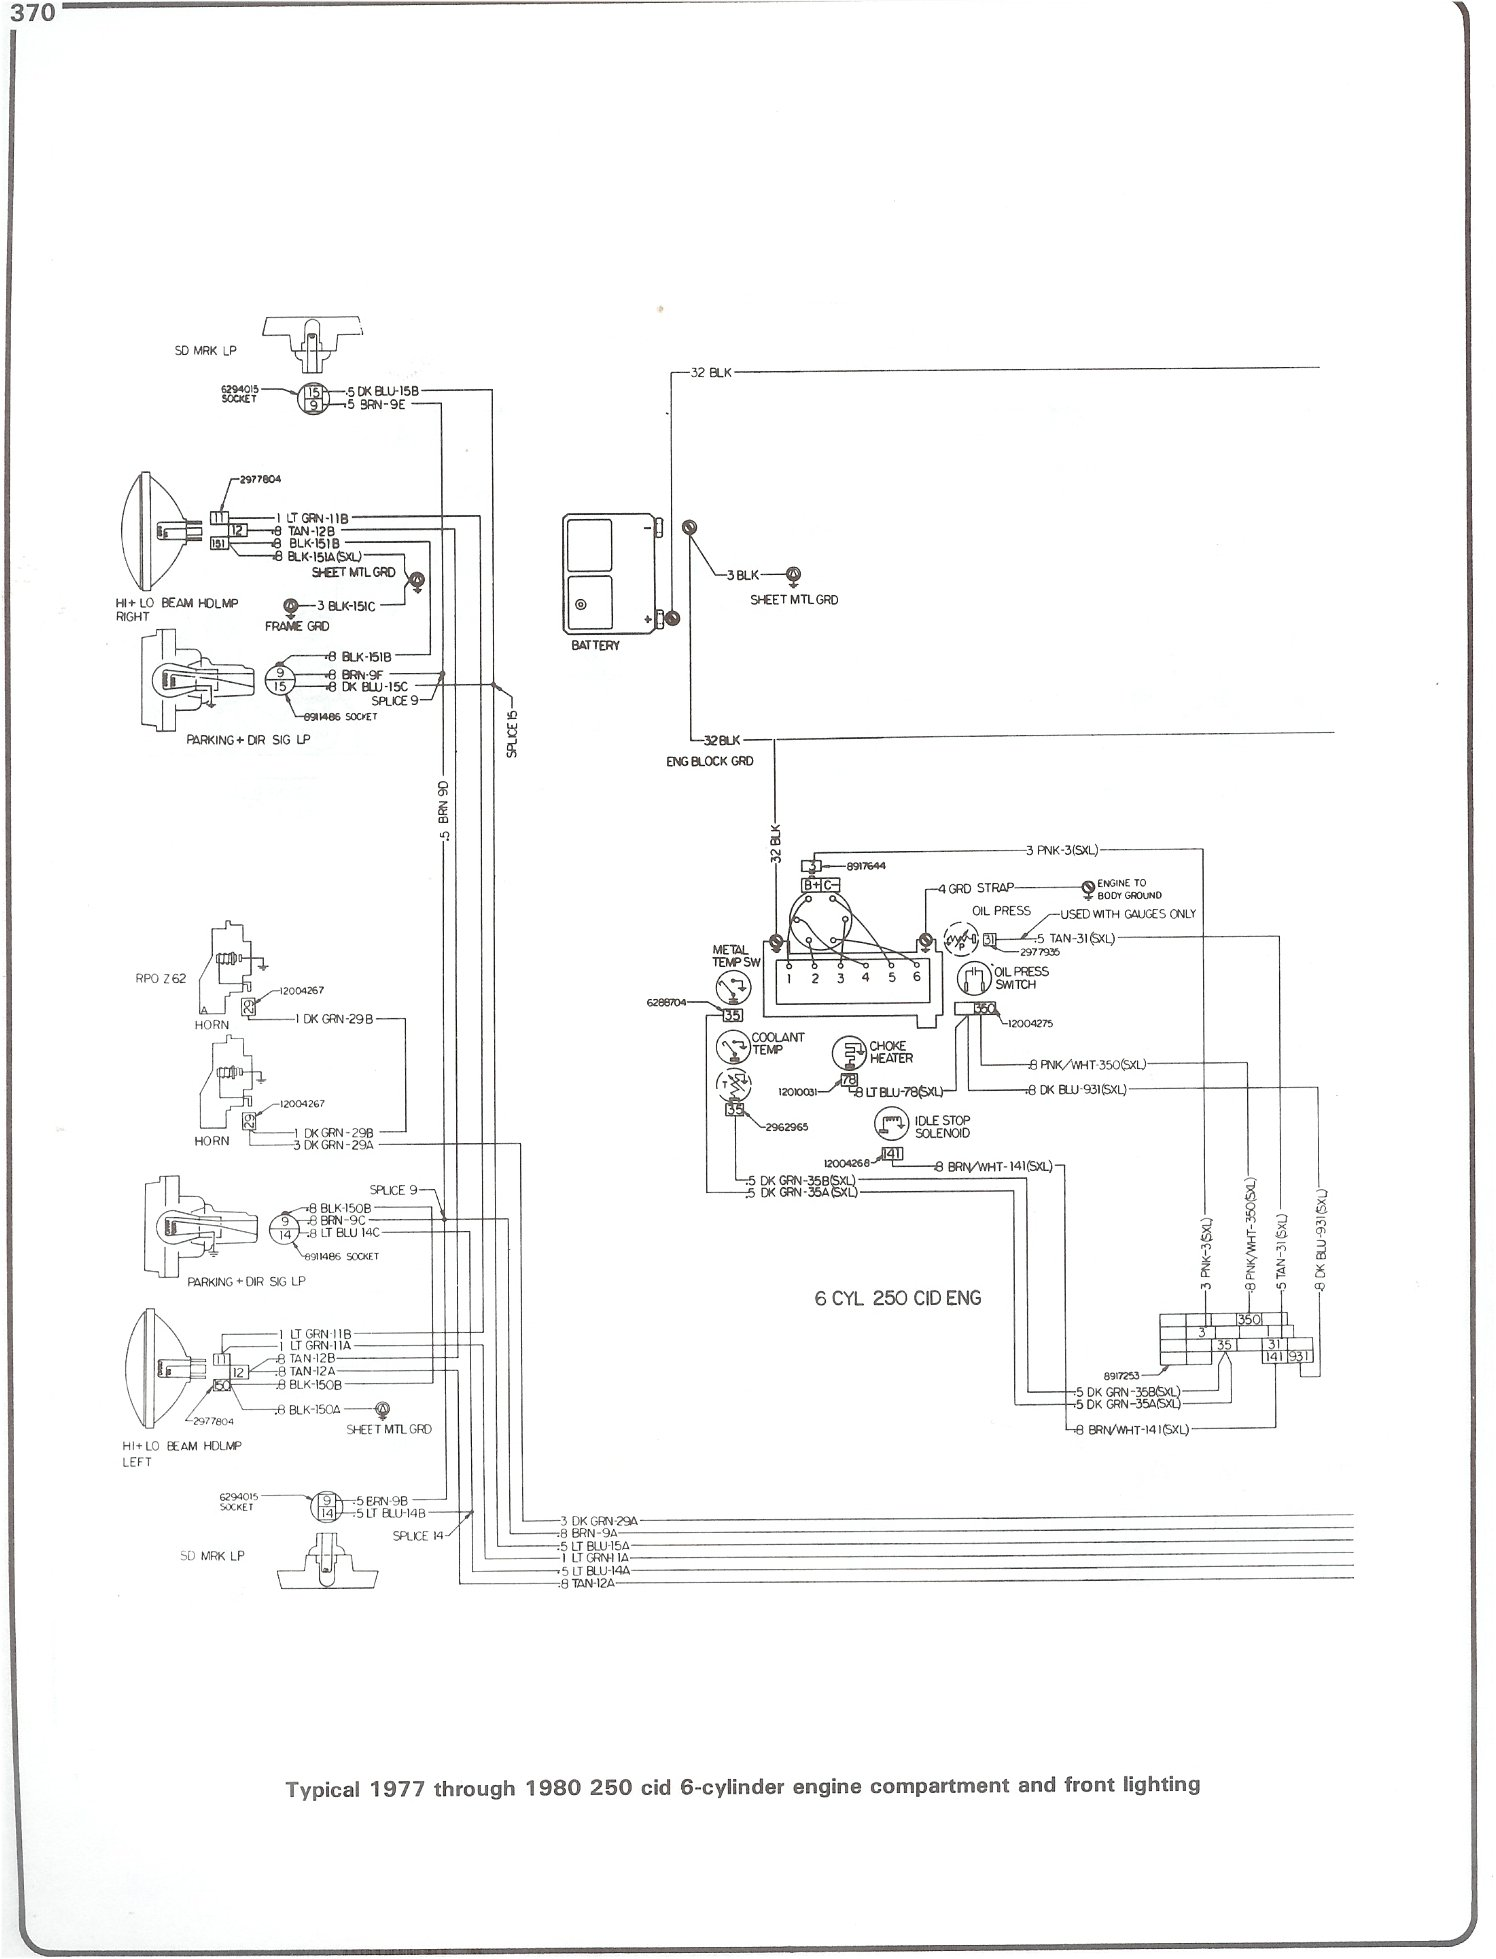 C0C58E 1985 Chevy S10 Steering Column Wiring Diagram | Wiring ResourcesWiring Resources